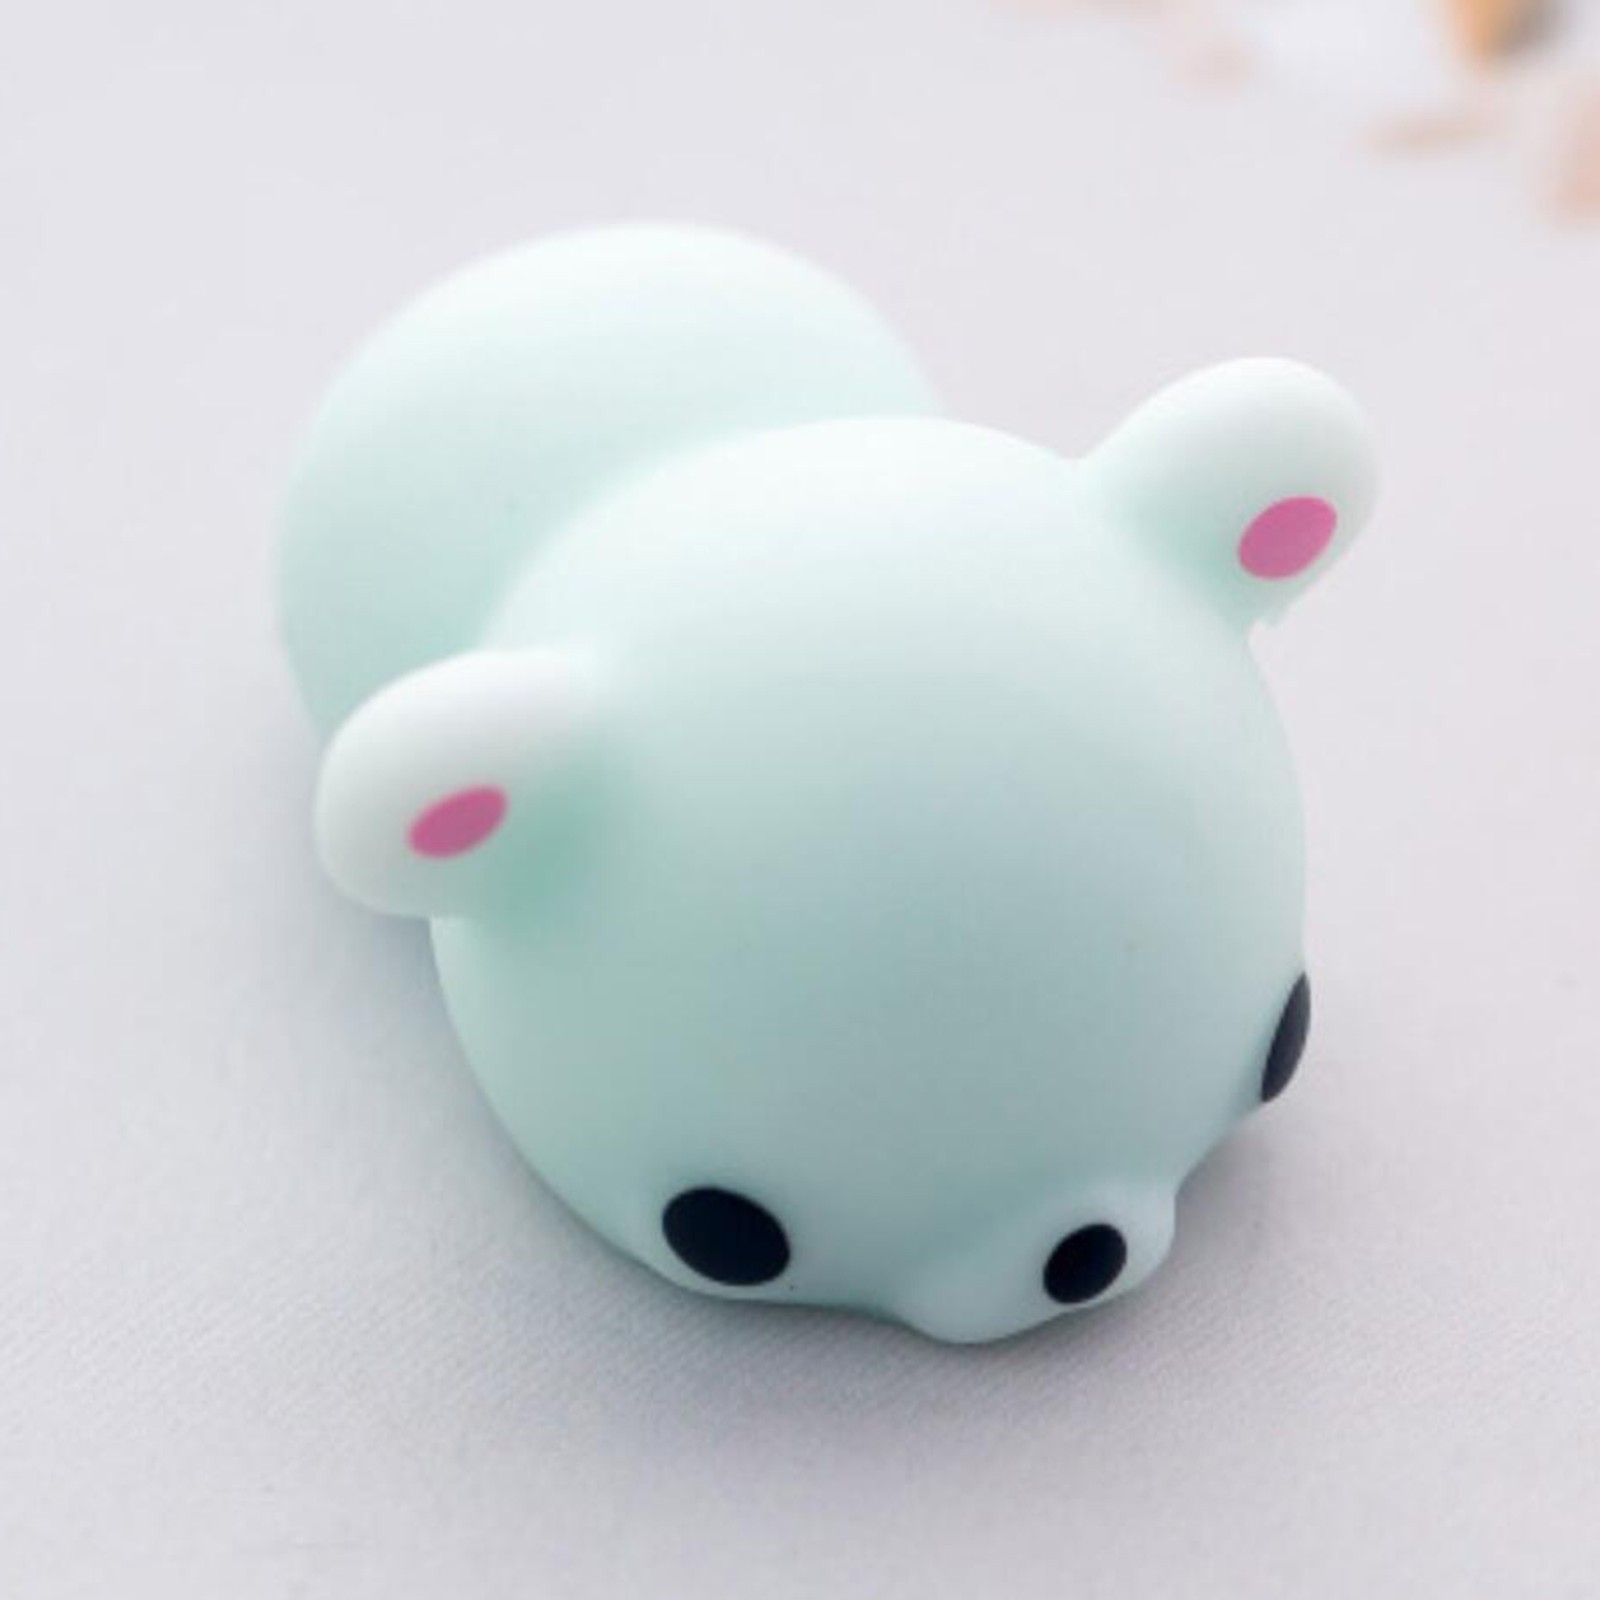 5Pack Cute Squishy Toy Cute Animal Antistress Ball Squeeze Rising Toys Abreact Soft Sticky Squishi Stress Relief Toys Funny Gift img2